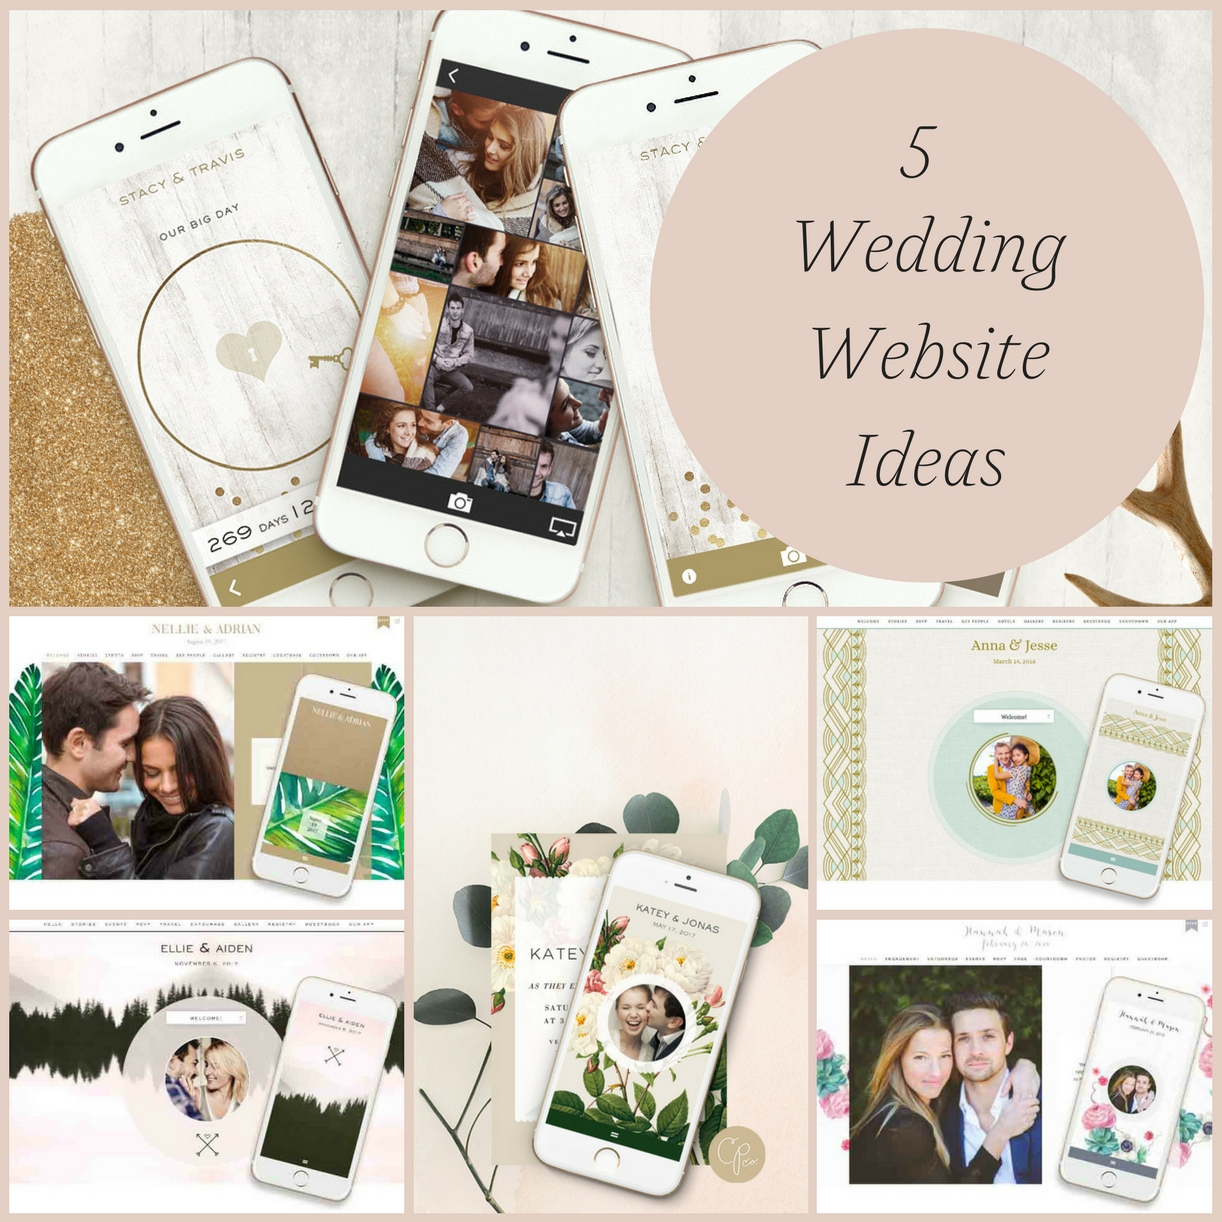 Wedding Websites Ideas: 5 Wedding Website Ideas » Hill City Bride